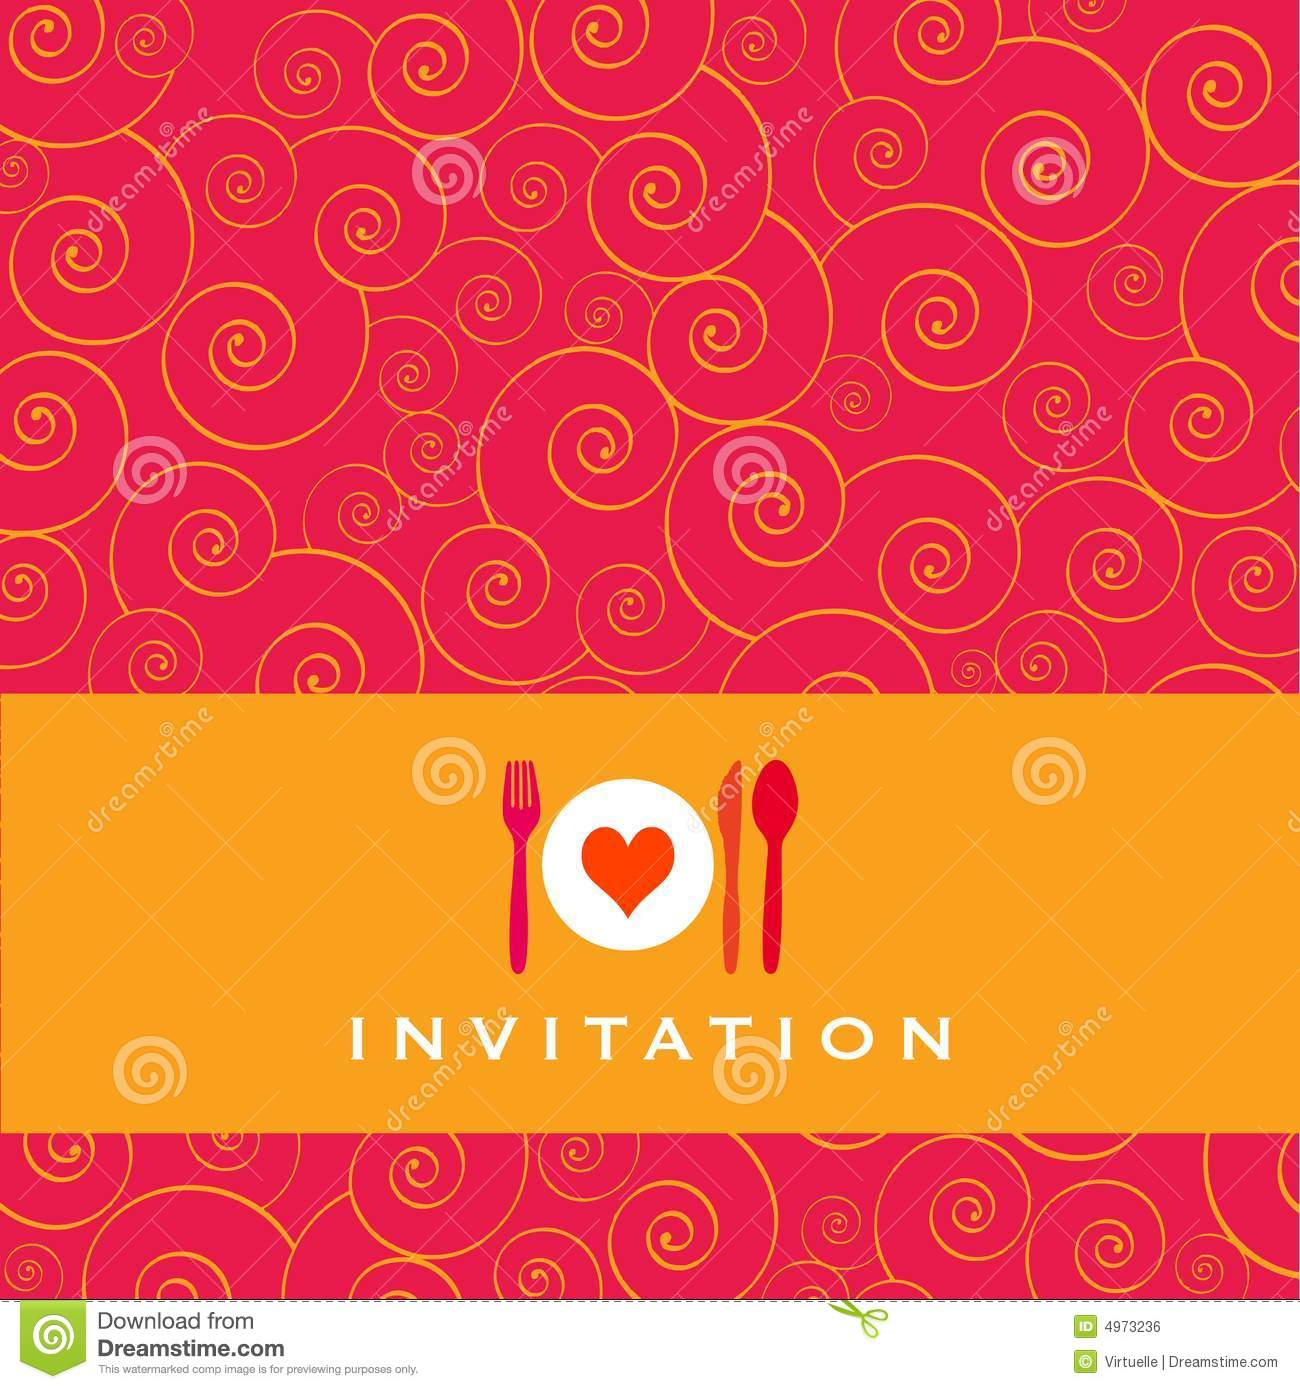 Corporate Party Invite with best invitations example